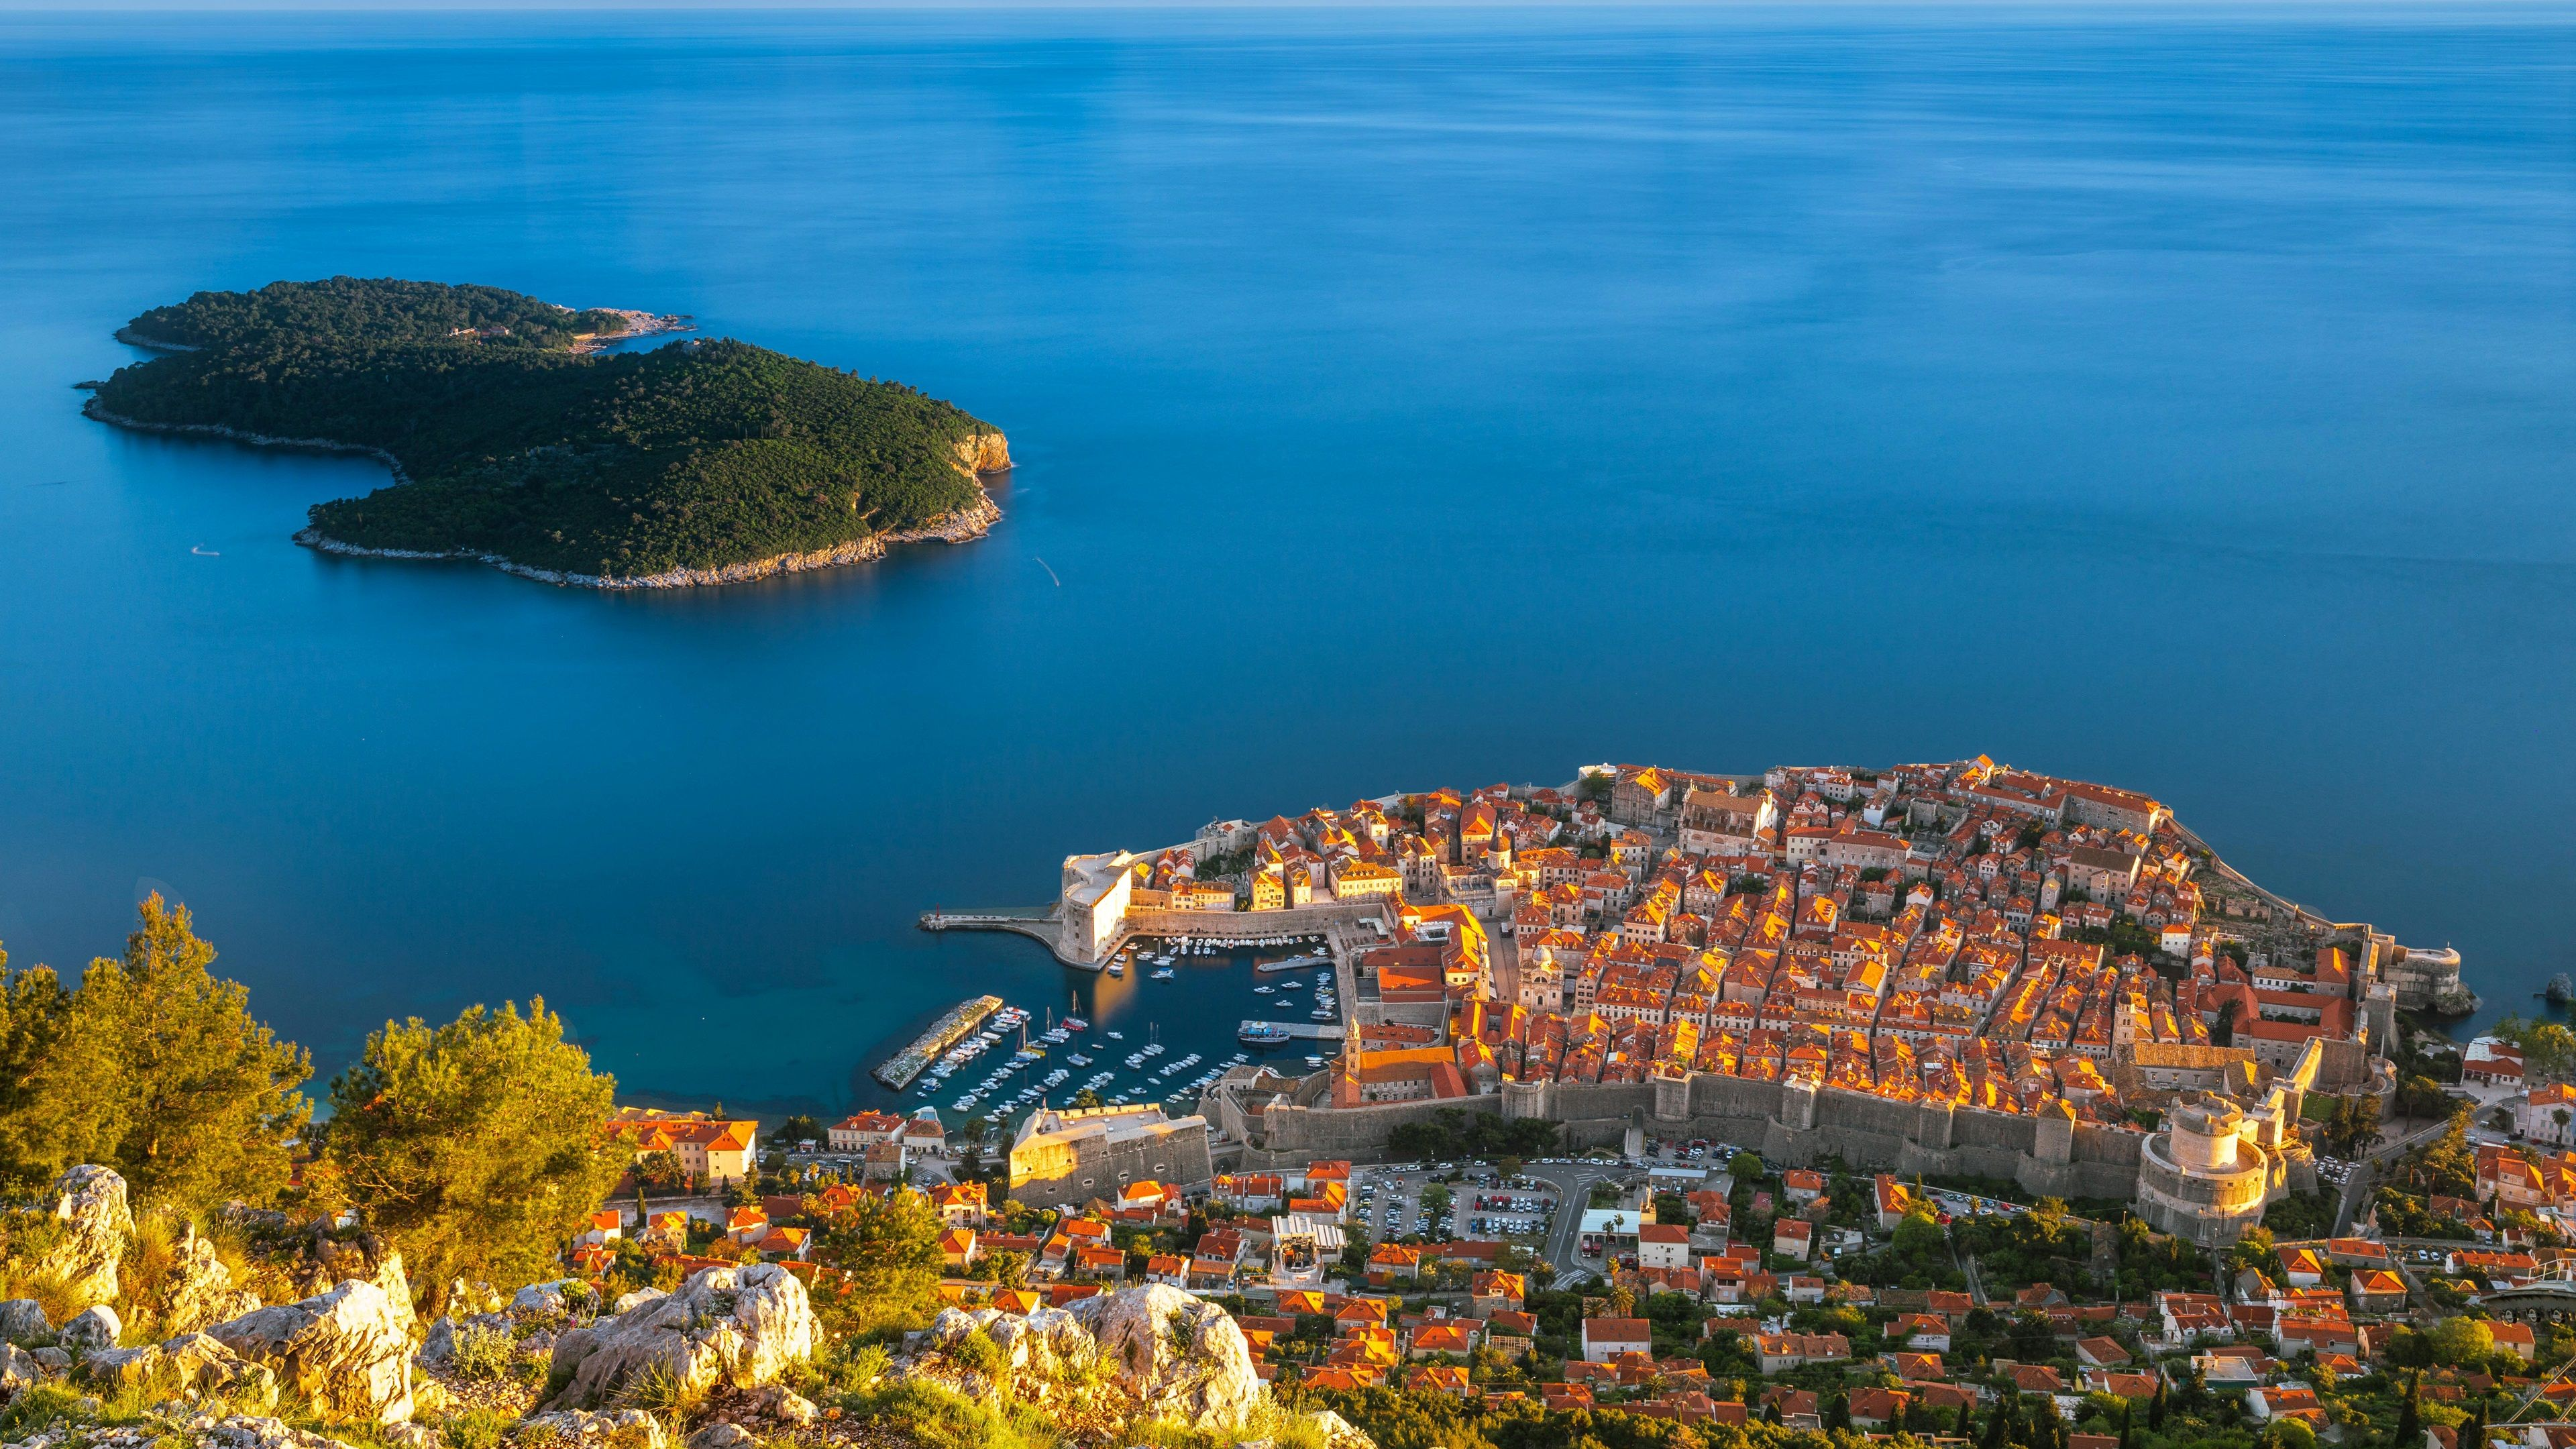 Wallpapers Croatia, Dubrovnik, sea, island, houses, buildings